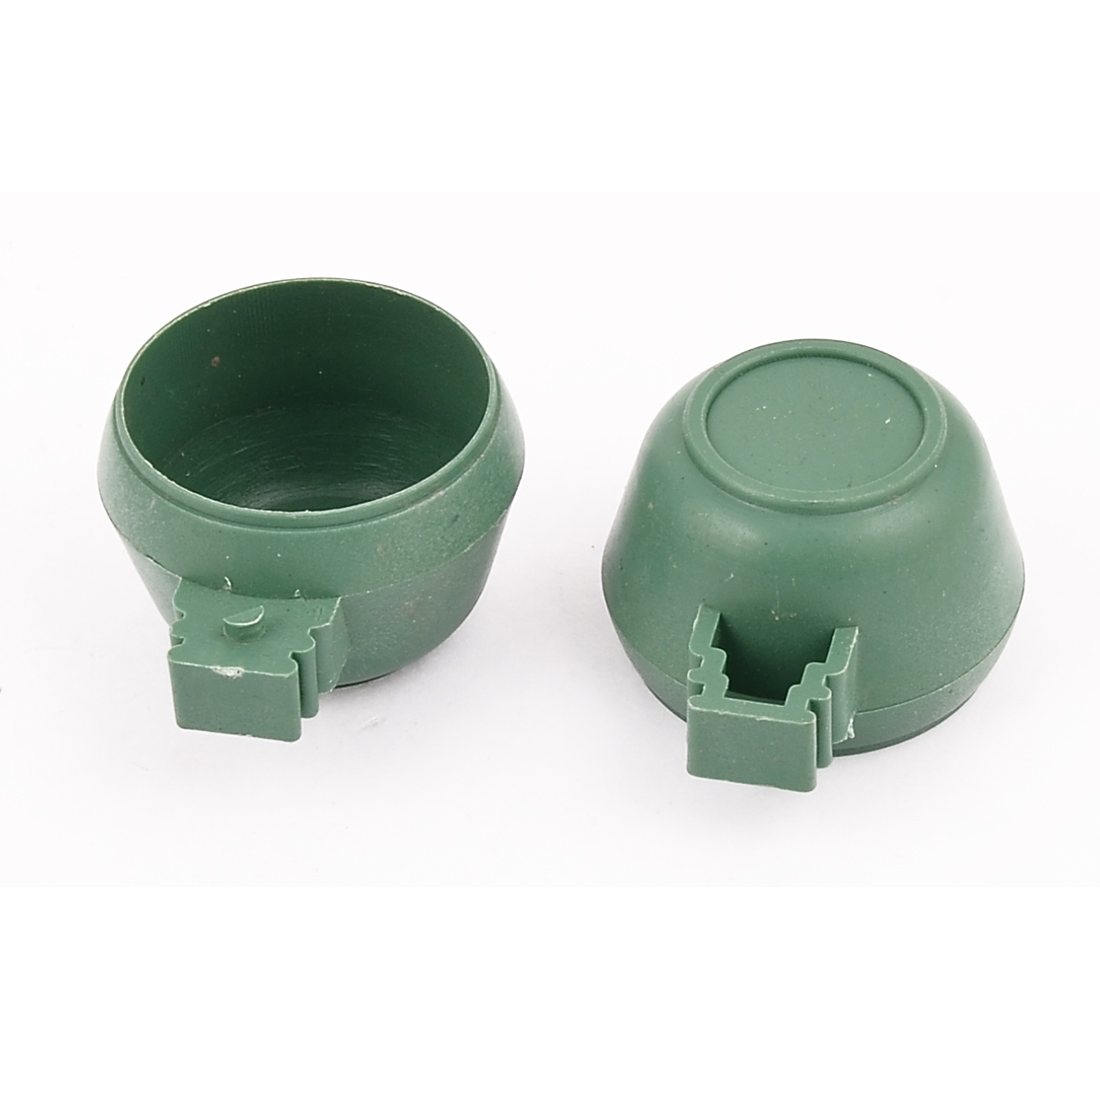 Hamster Parrot Birds Cage Water Food Feeder Cup Bowl 36mm x 30mm Green 2PCS